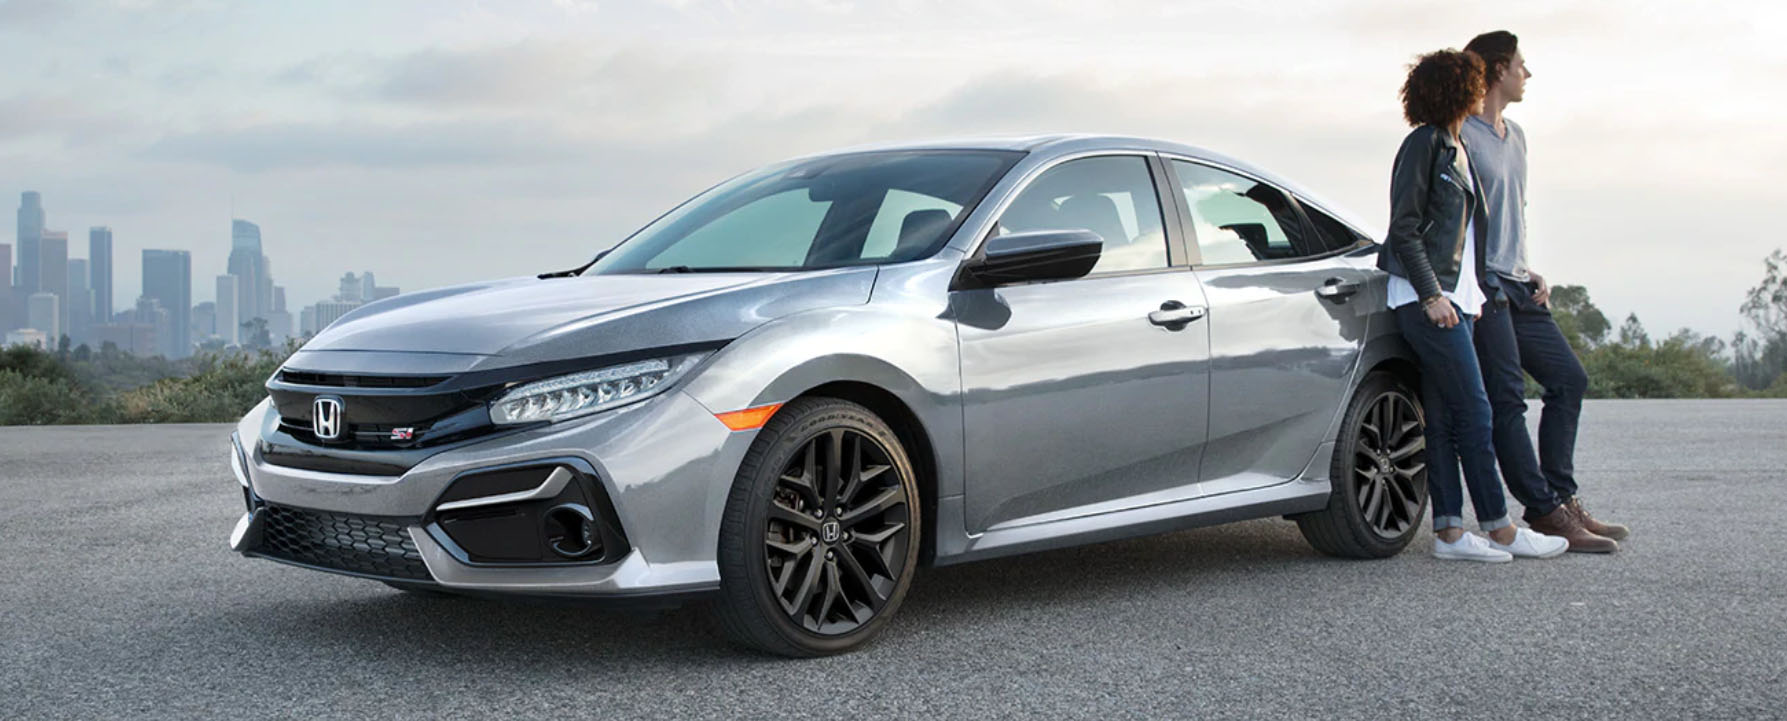 2020 Honda Civic Si Sedan For Sale in Spokane